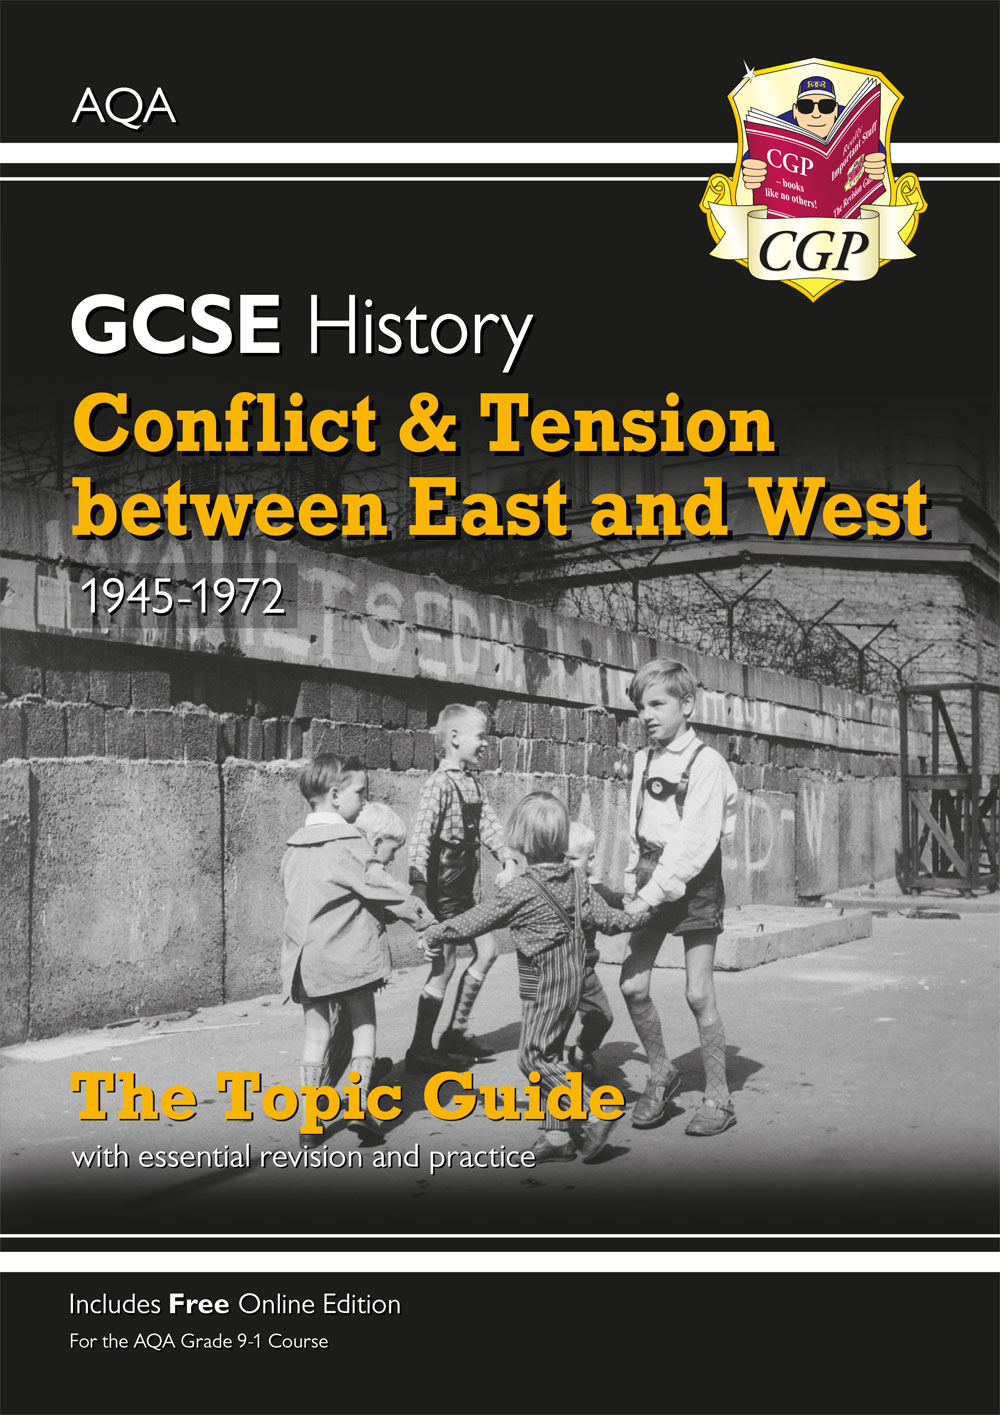 HAEWO41 - New Grade 9-1 GCSE History AQA Topic Guide - Conflict and Tension Between East and West, 1